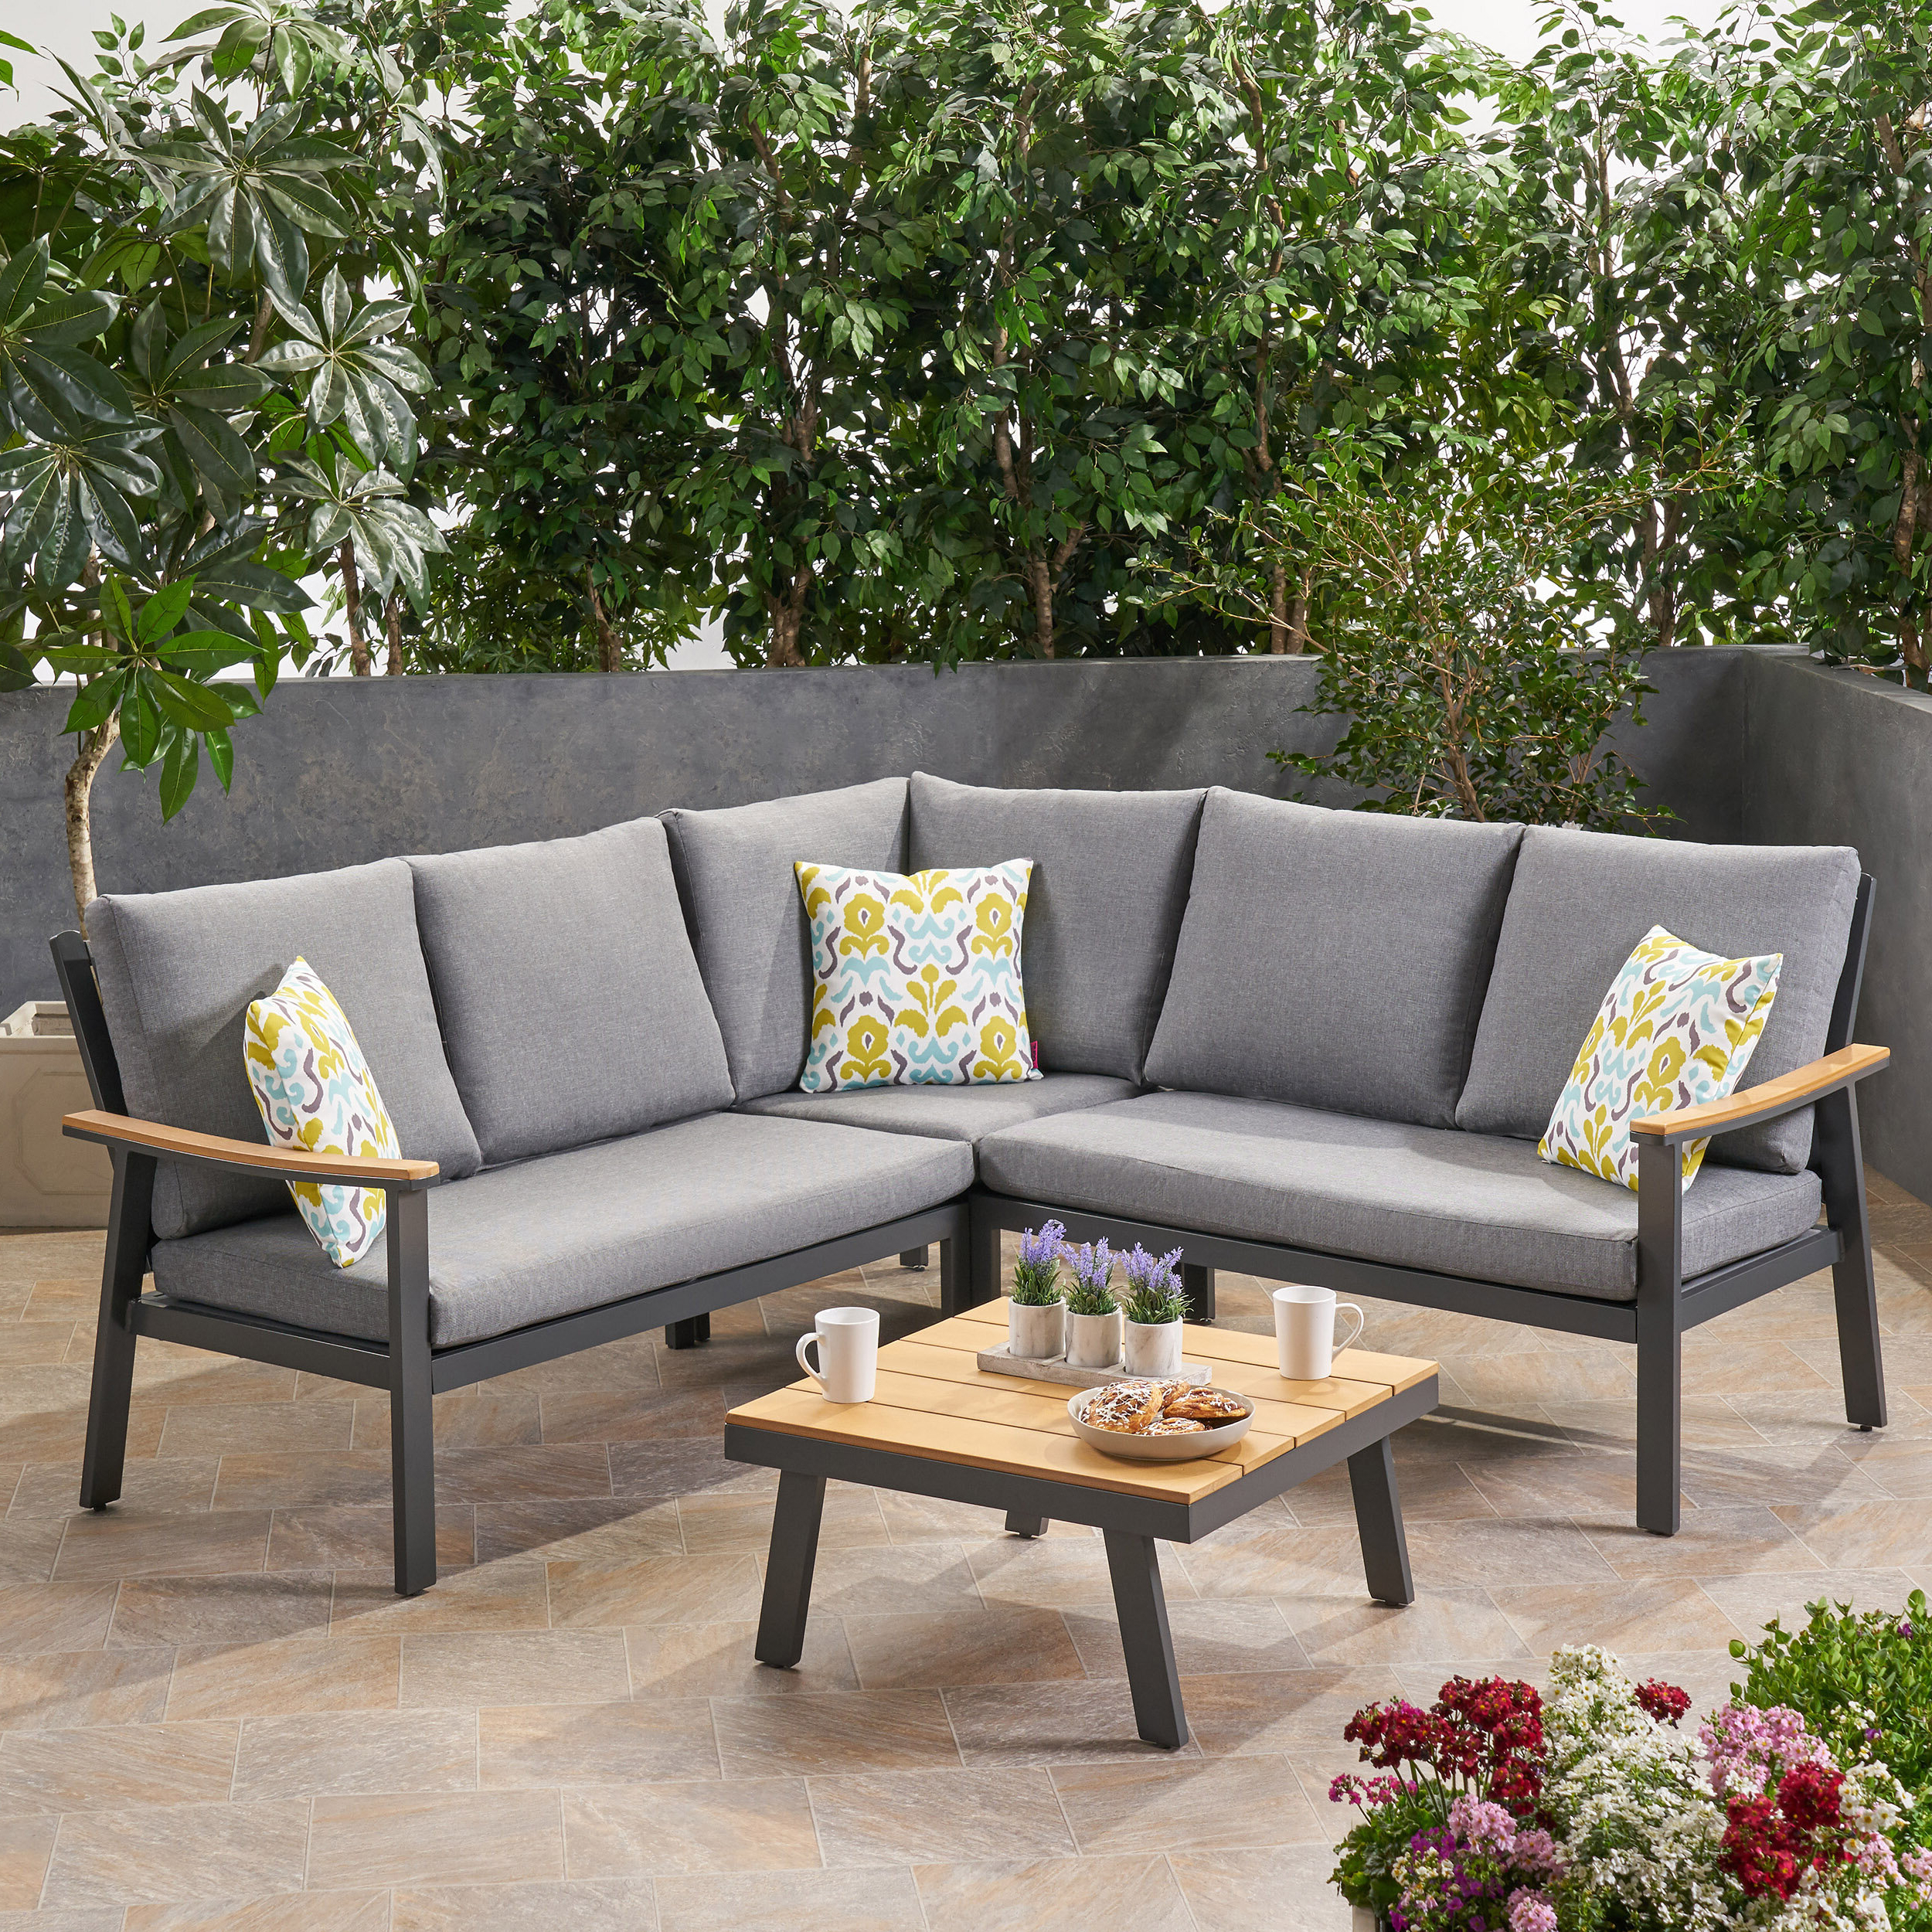 Most Recent Seaham Patio Sectionals With Cushions With Regard To Arocho Outdoor 4 Piece Sectional Seating Group With Cushions (View 17 of 20)